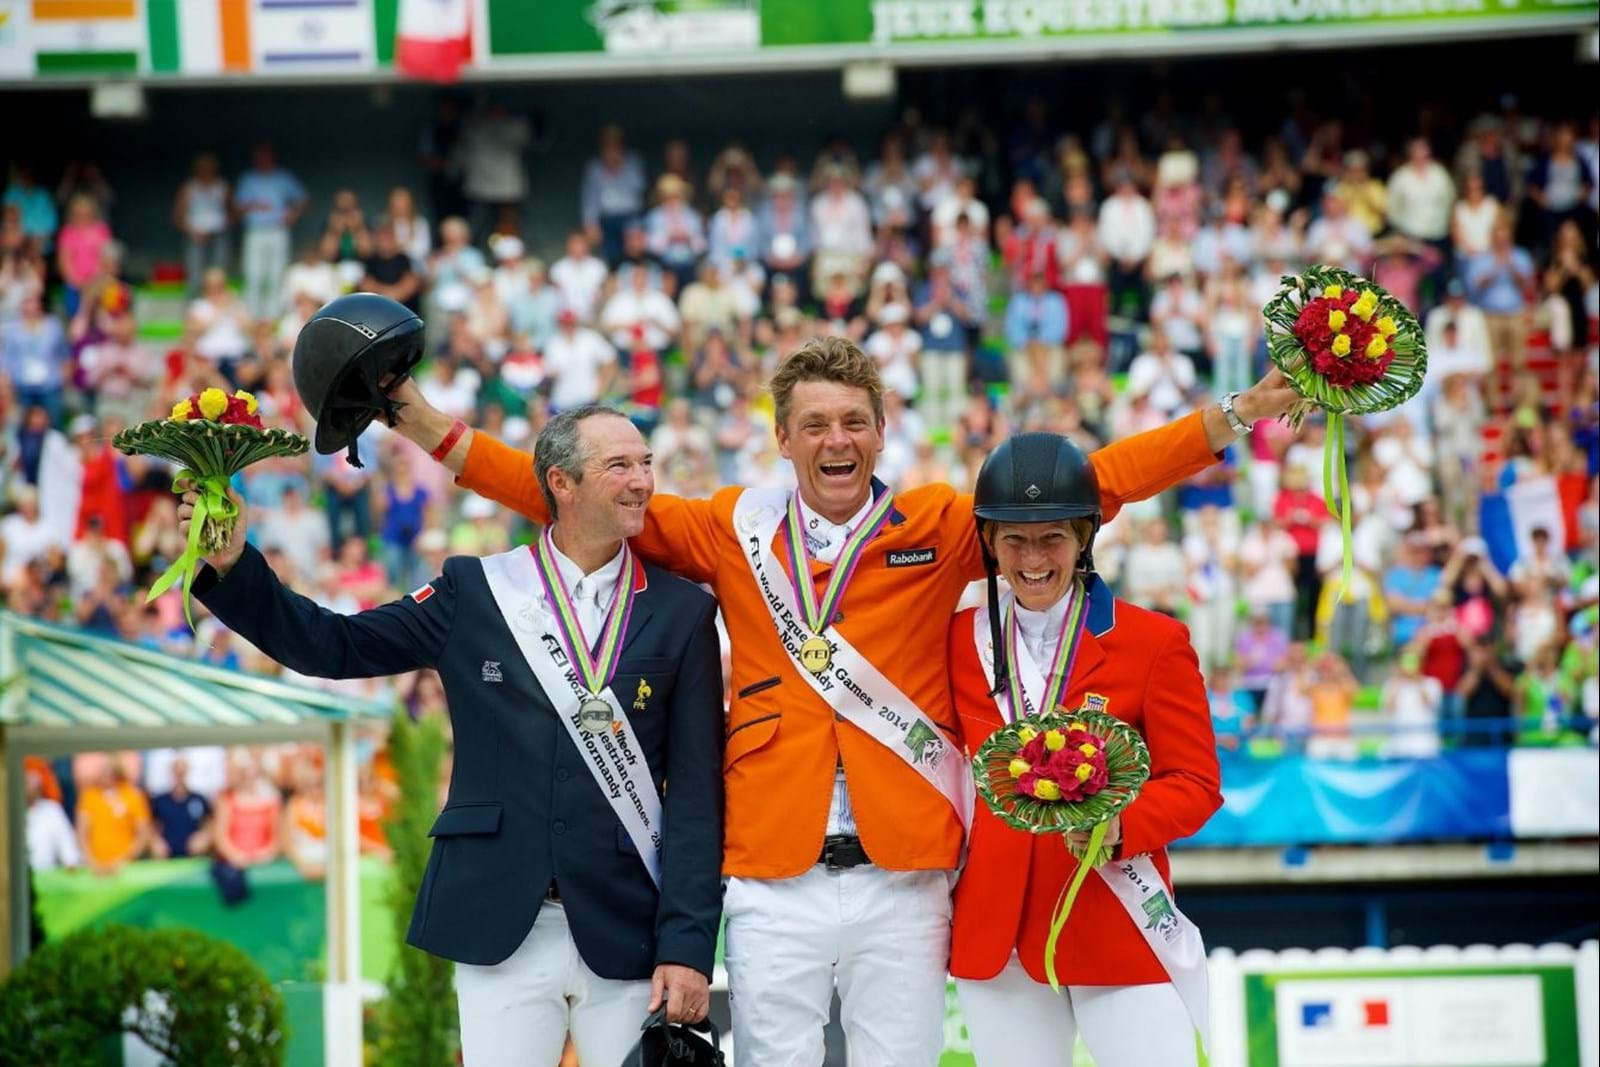 SUNSET+VINE TO BE HOST BROADCASTER FOR THE FEI WORLD EQUESTRIAN GAMES™ TRYON 2018